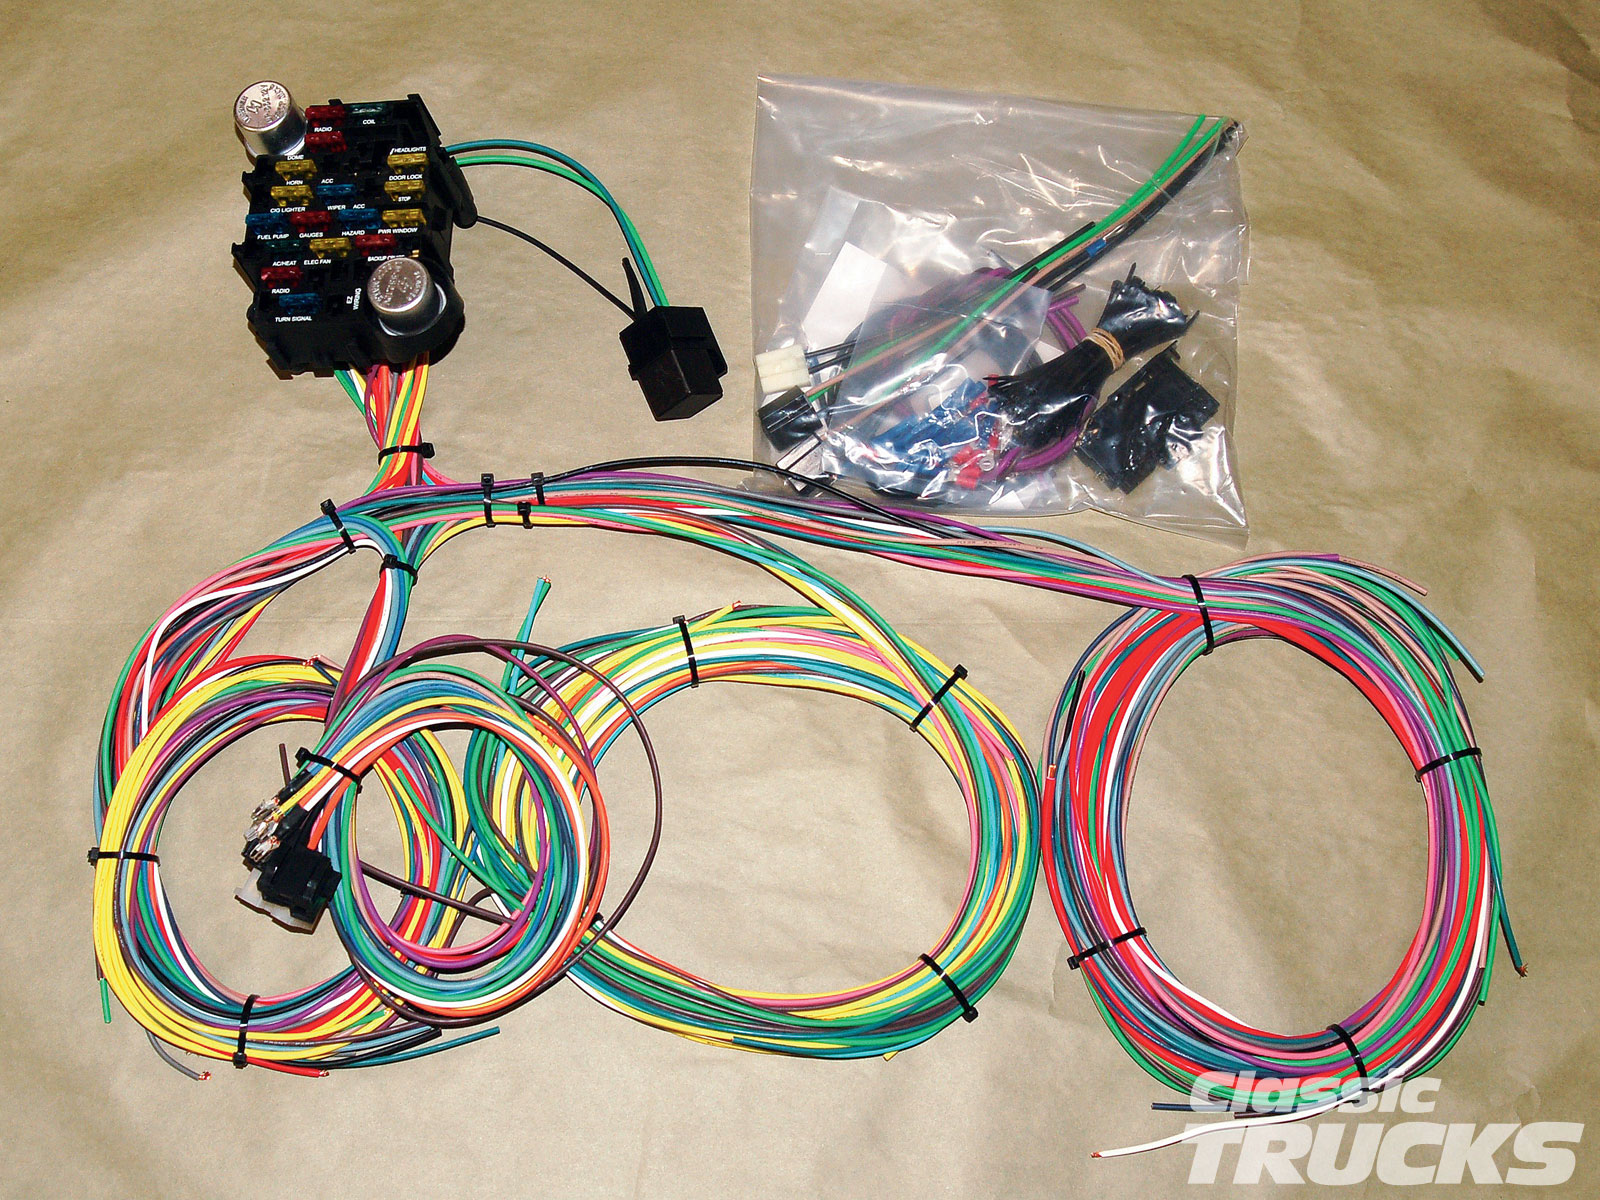 1010clt 02 o aftermarket wiring harness install kit?resize\\\=665%2C499 painless wiring harness australia tamahuproject org universal wiring harness australia at bakdesigns.co